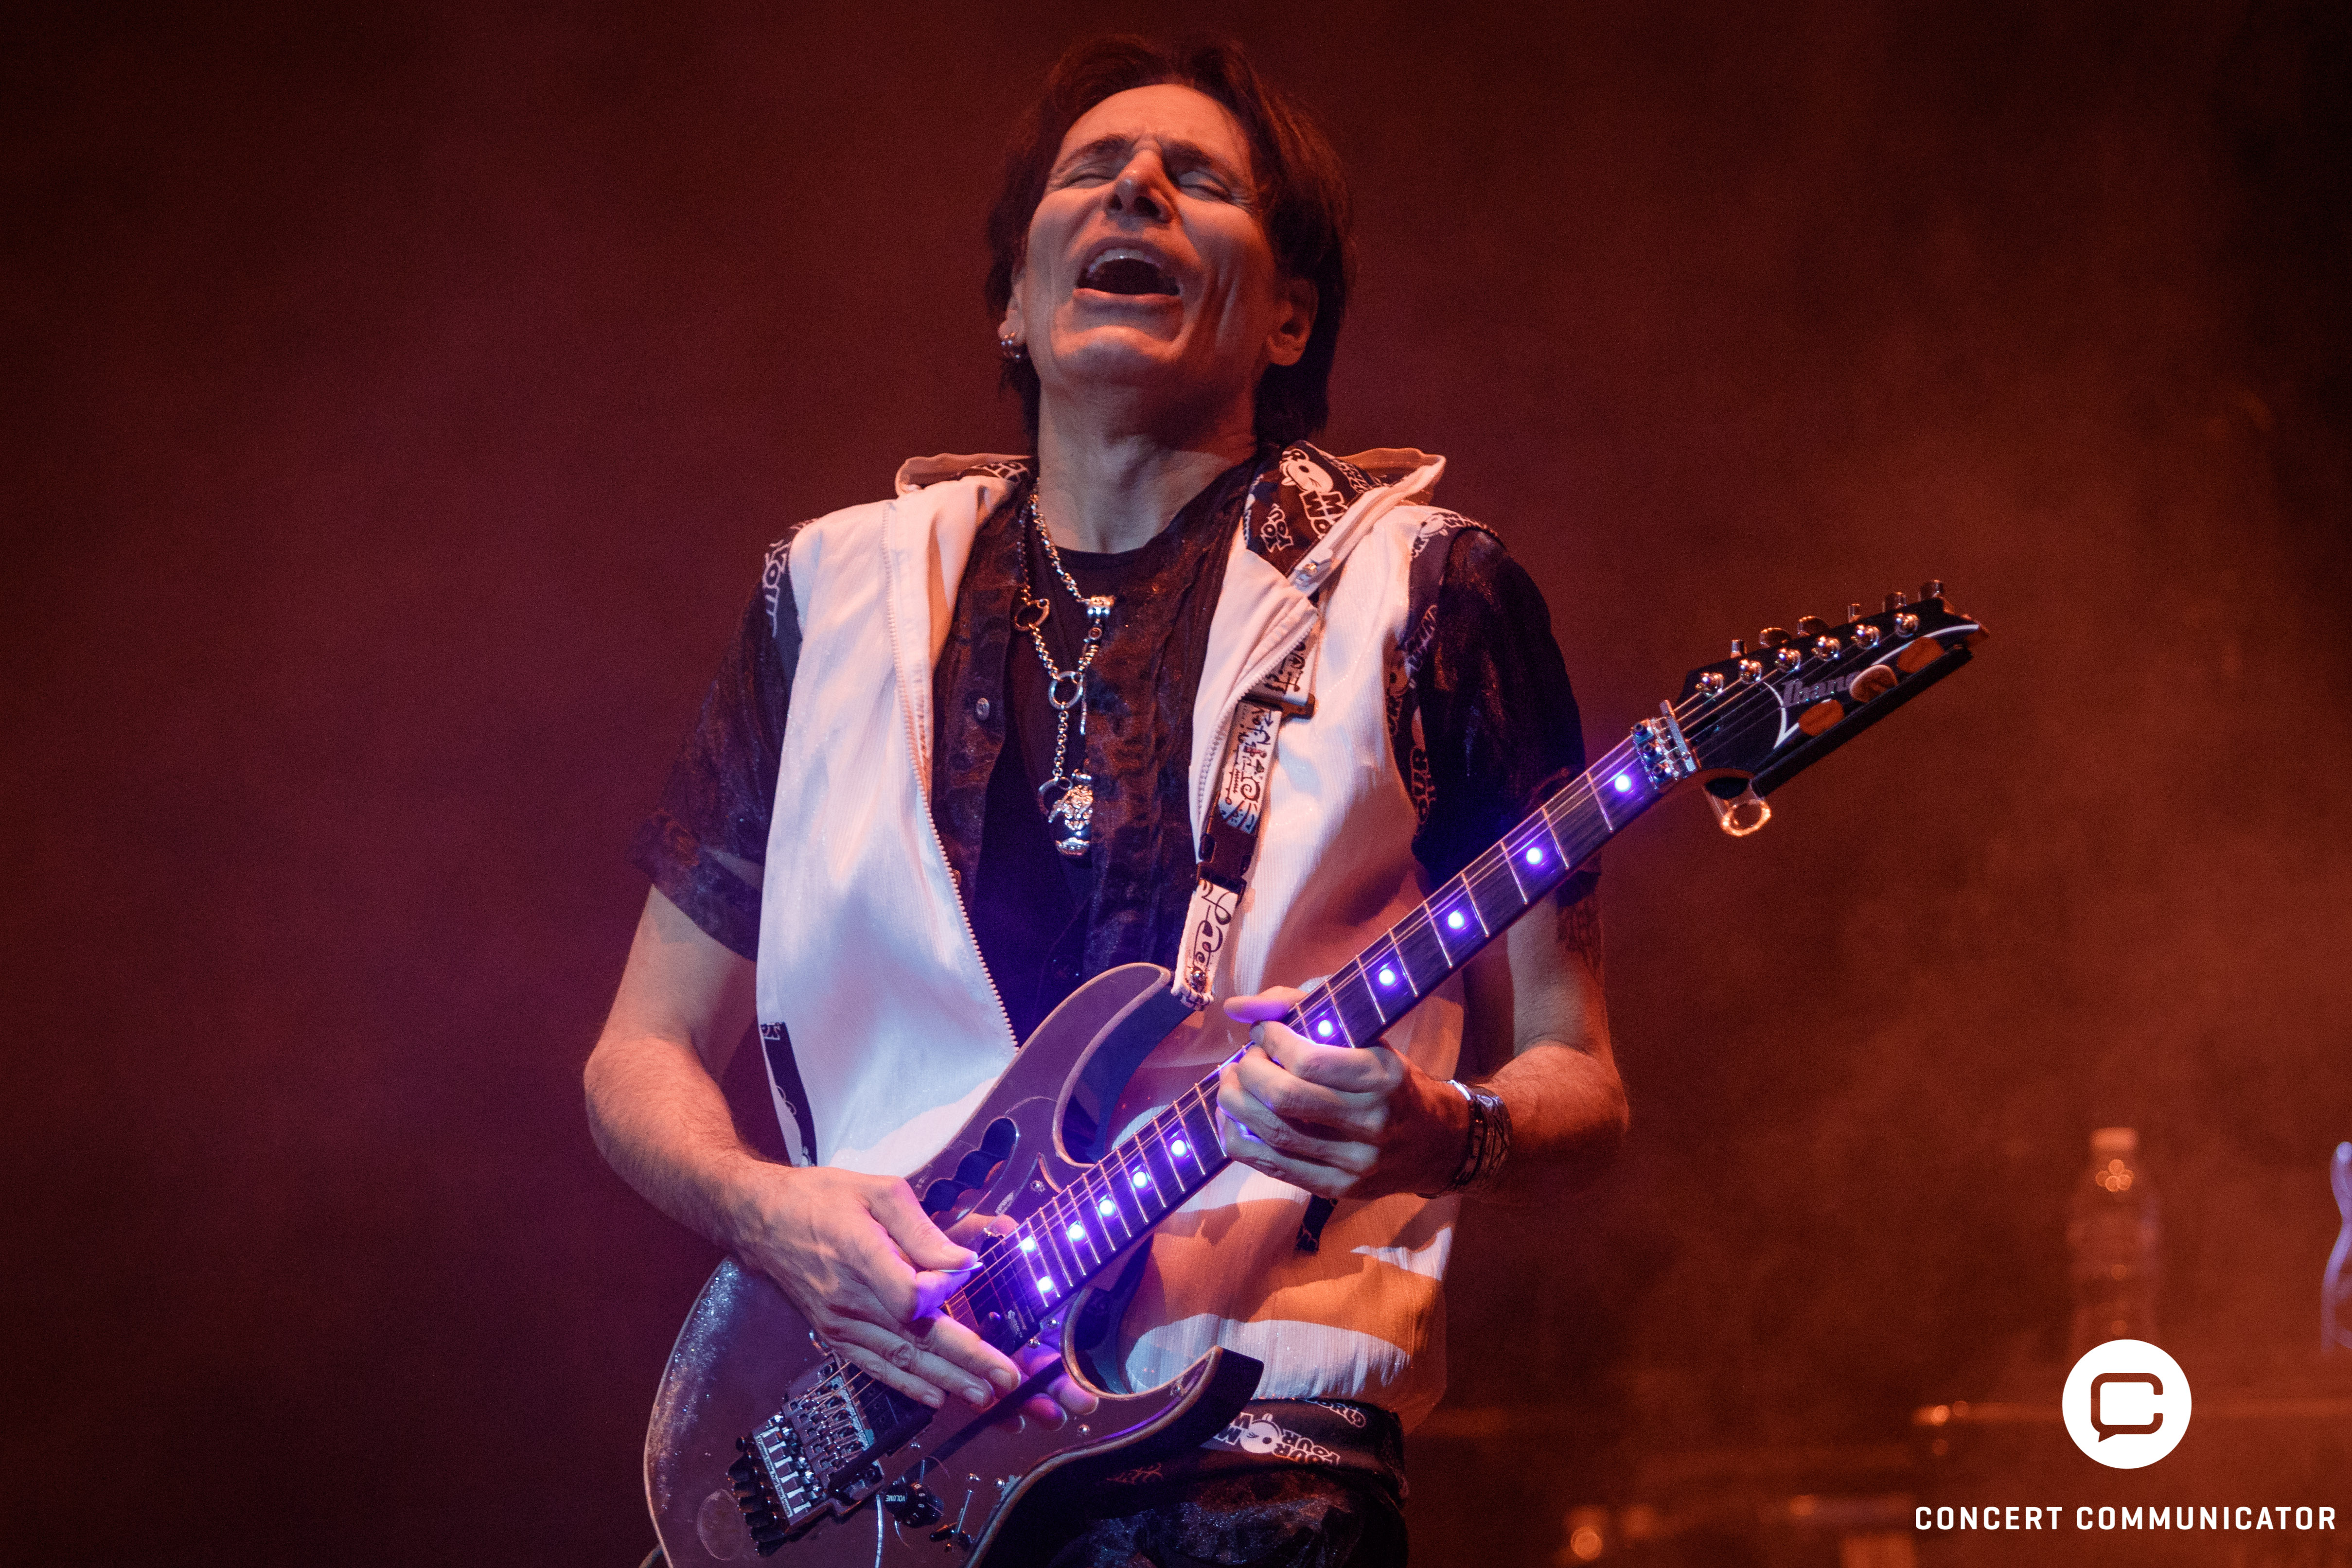 Steve Vai at the Ames Center